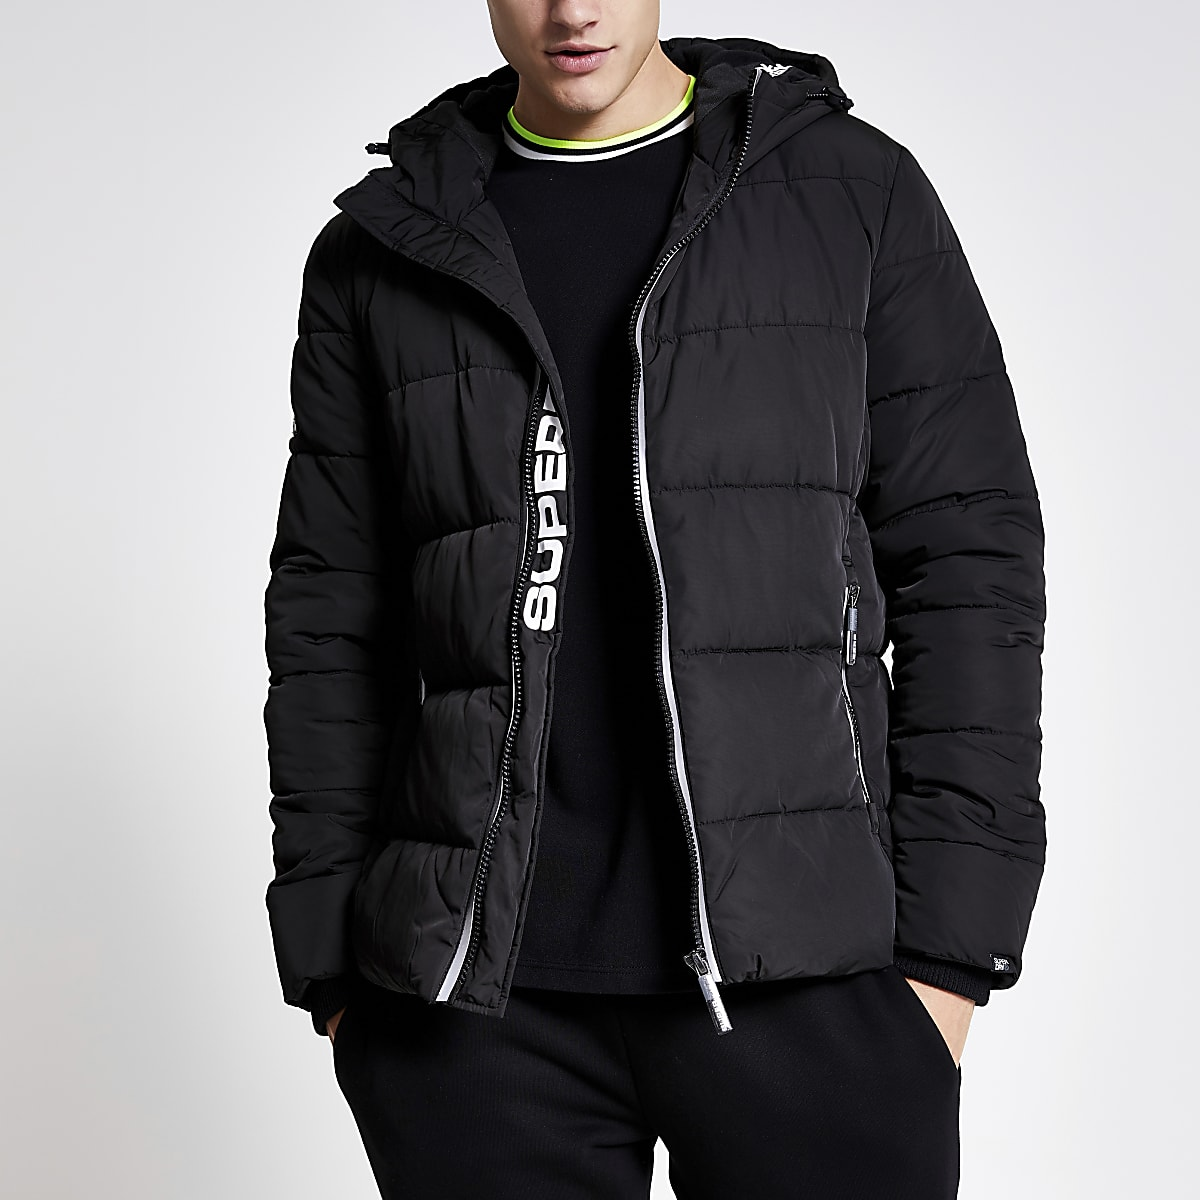 Superdry black puffer jacket